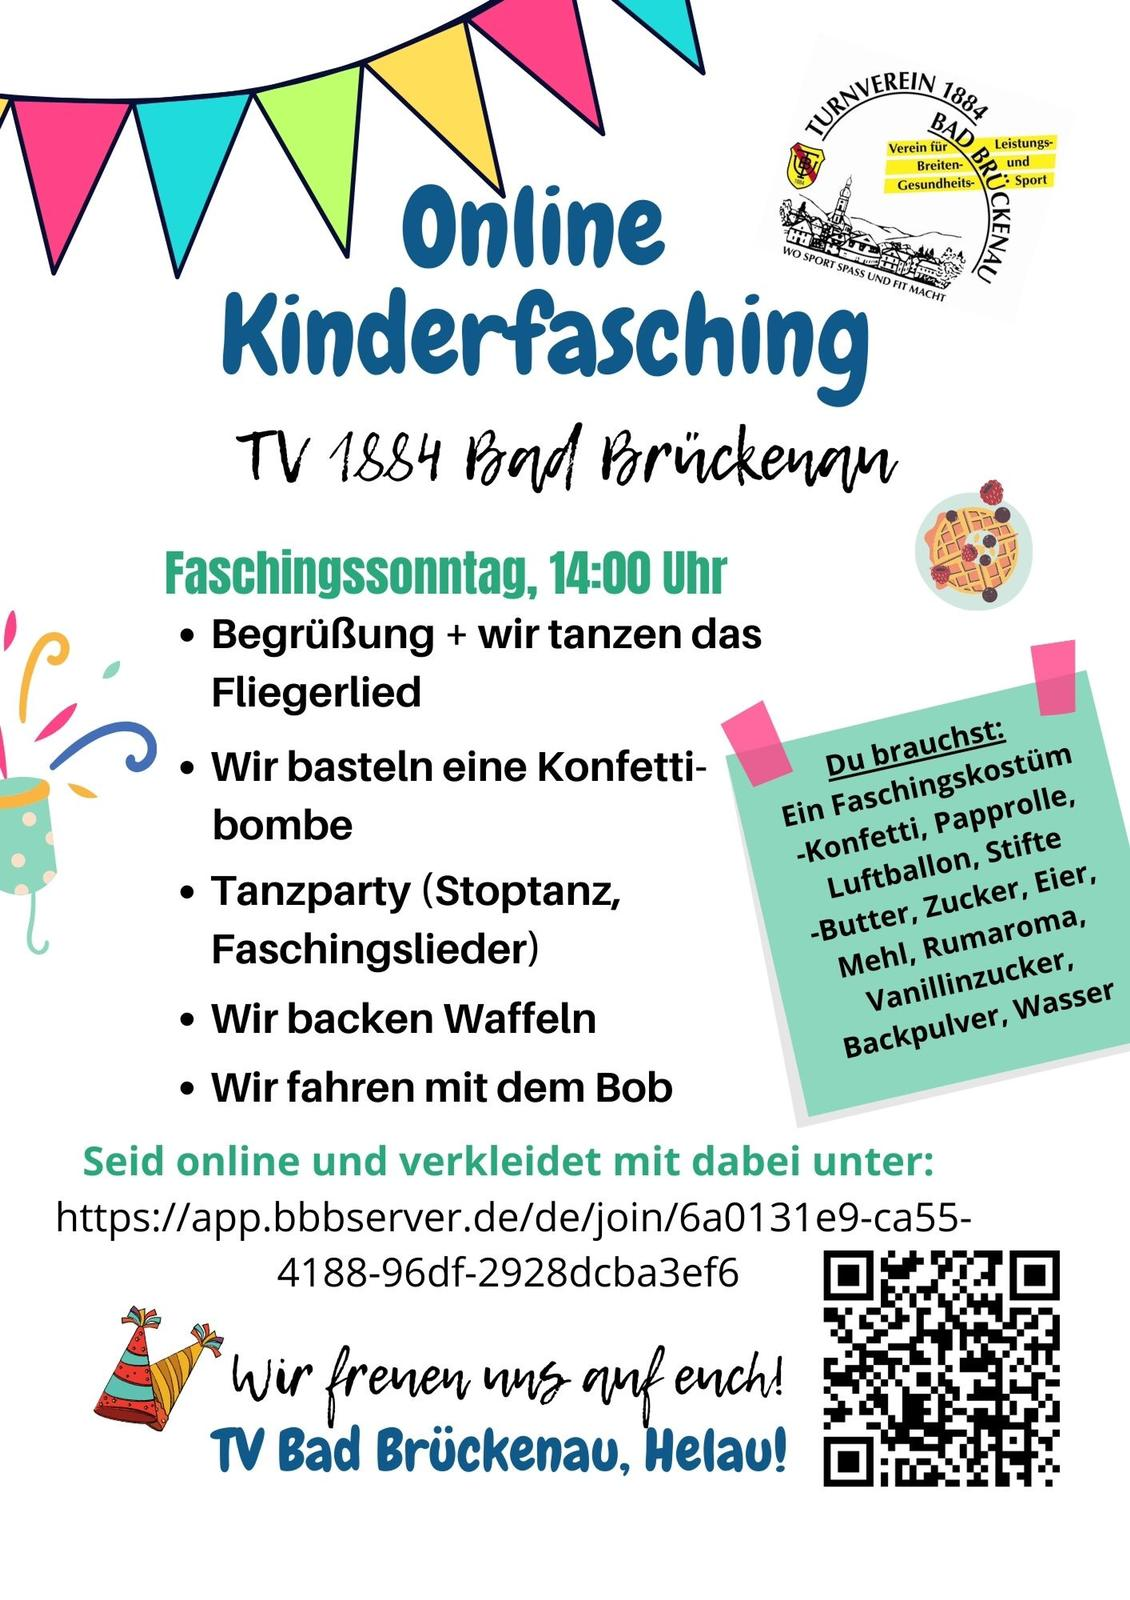 Online Kinderfasching TV BRK